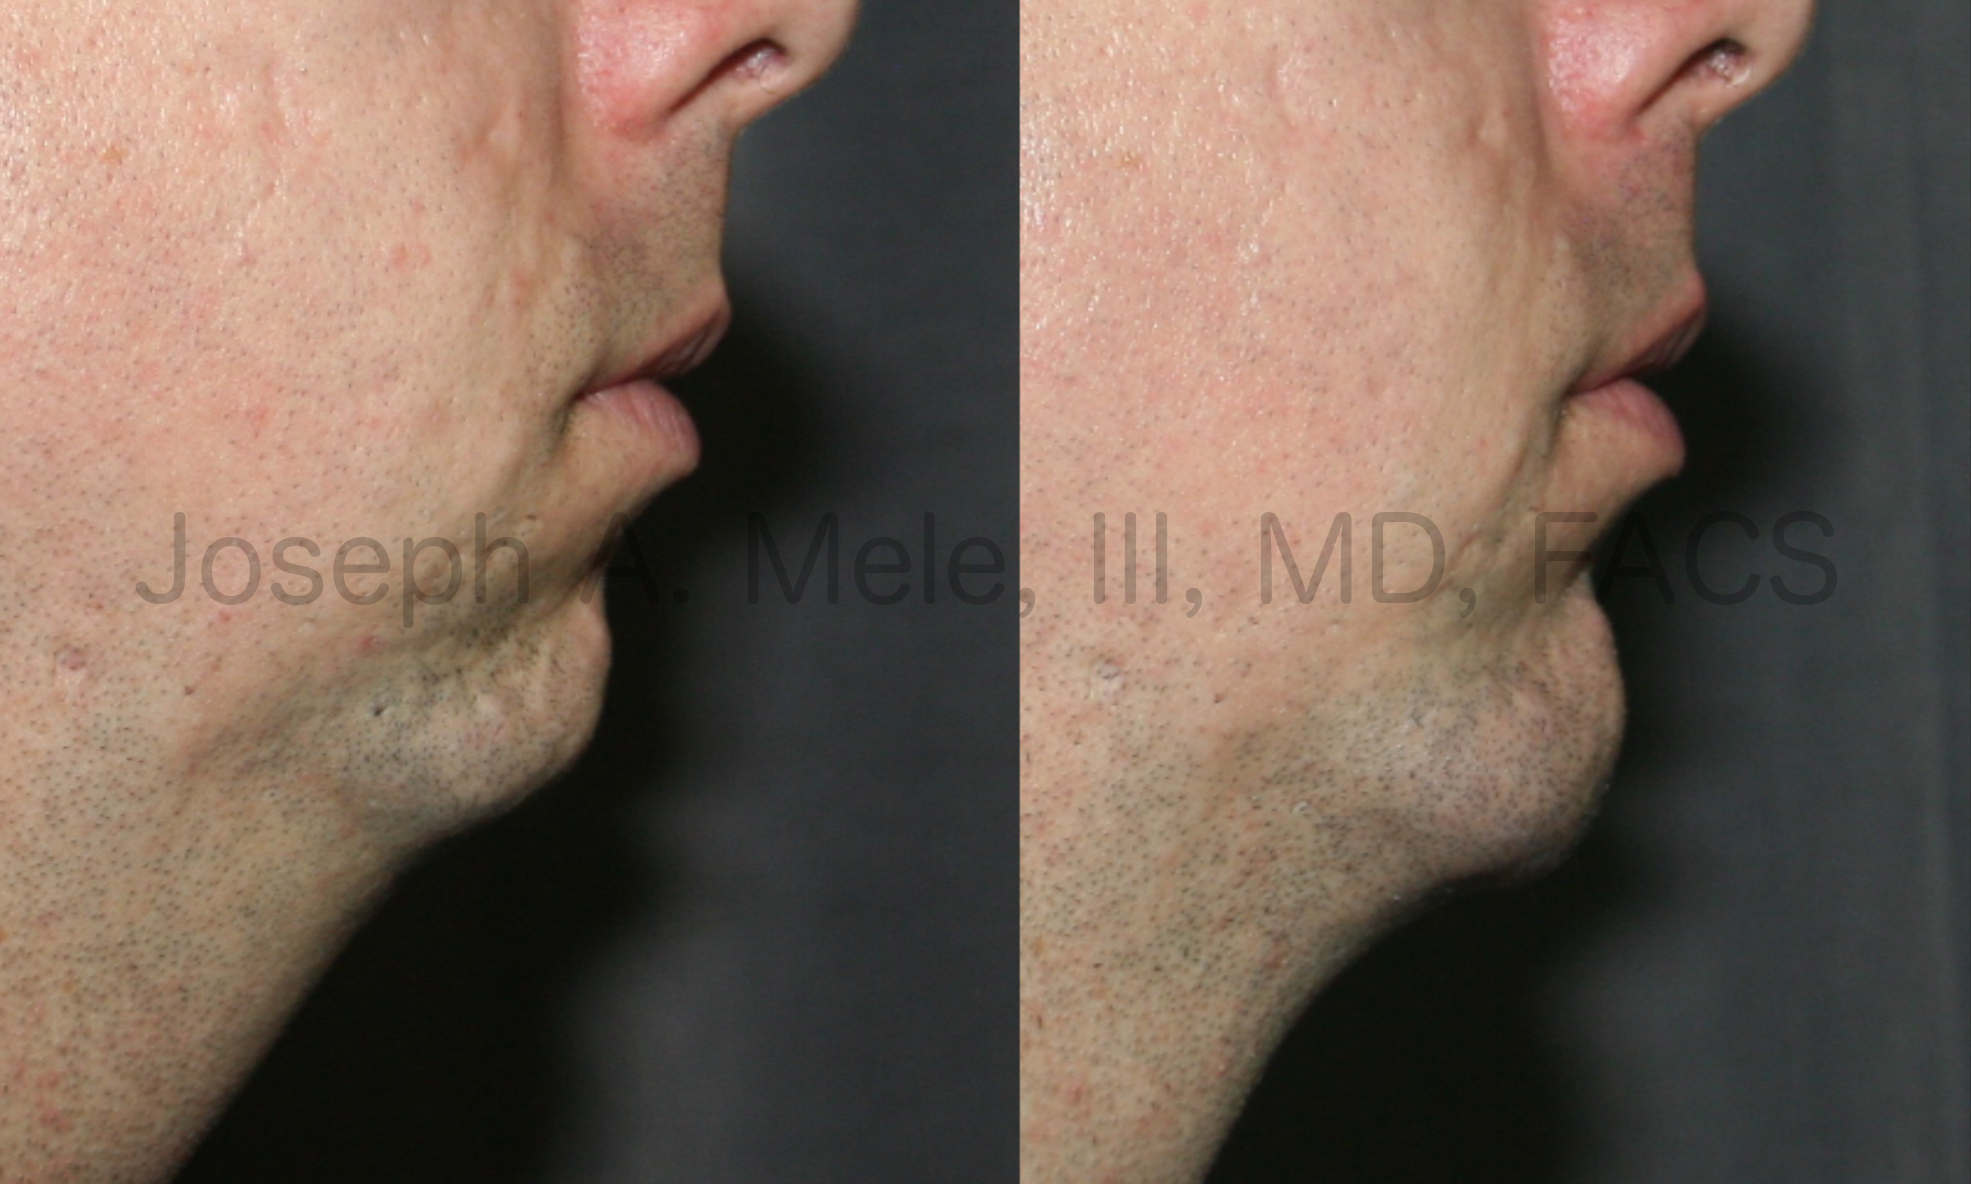 Male Chin Augmentation before and after pictures (Chin Implant)